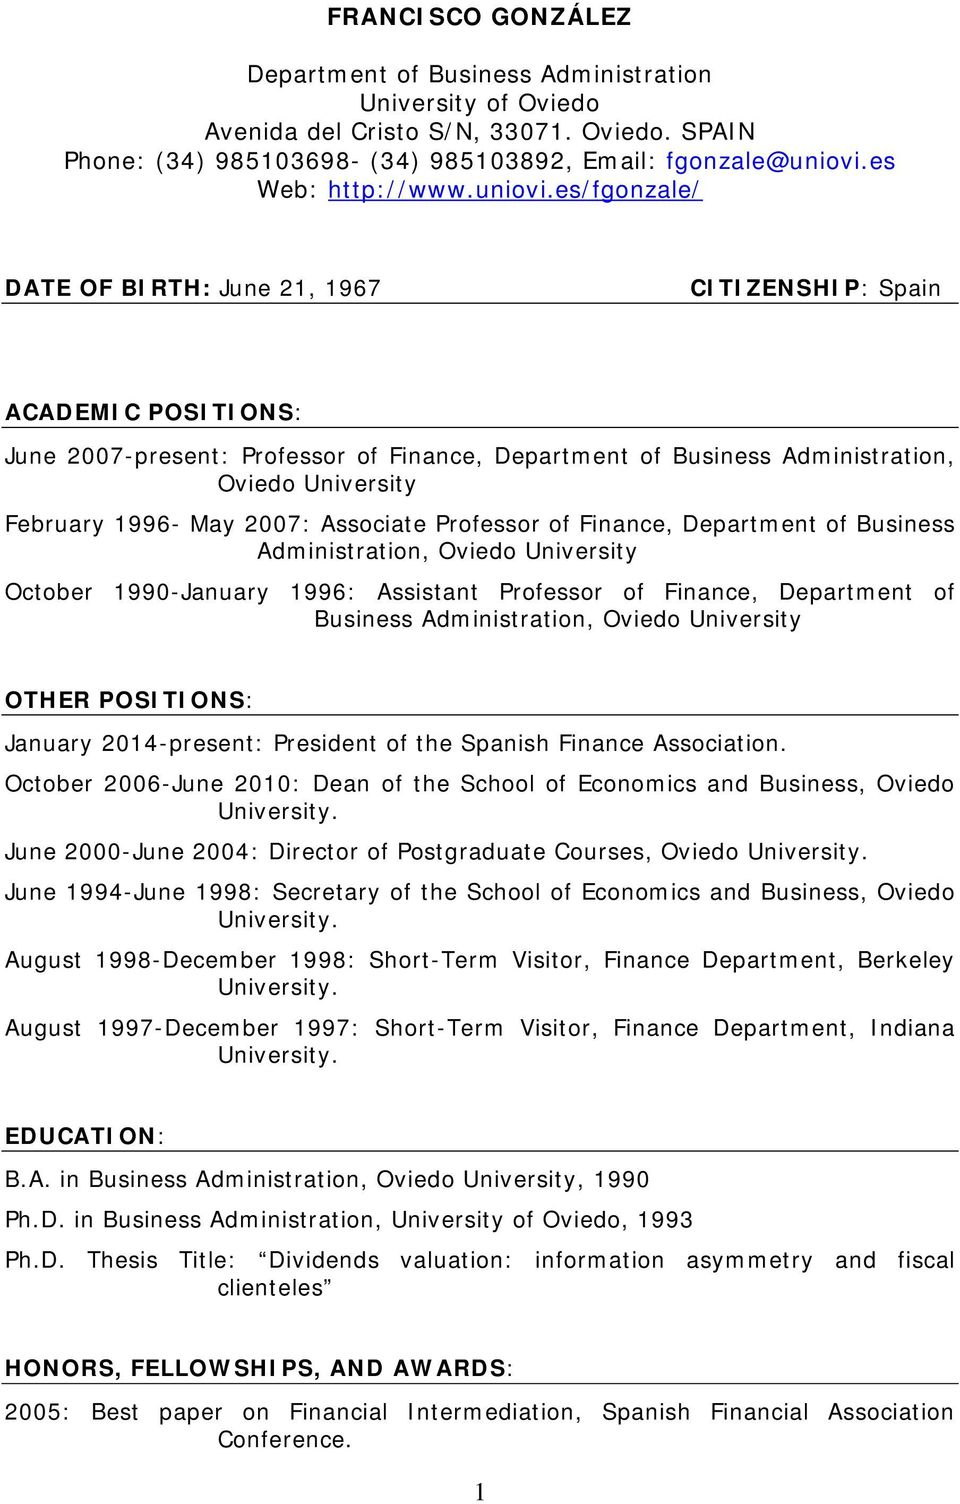 es/fgonzale/ DATE OF BIRTH: June 21, 1967 CITIZENSHIP: Spain ACADEMIC POSITIONS: June 2007-present: Professor of Finance, Department of Business Administration, Oviedo University February 1996- May